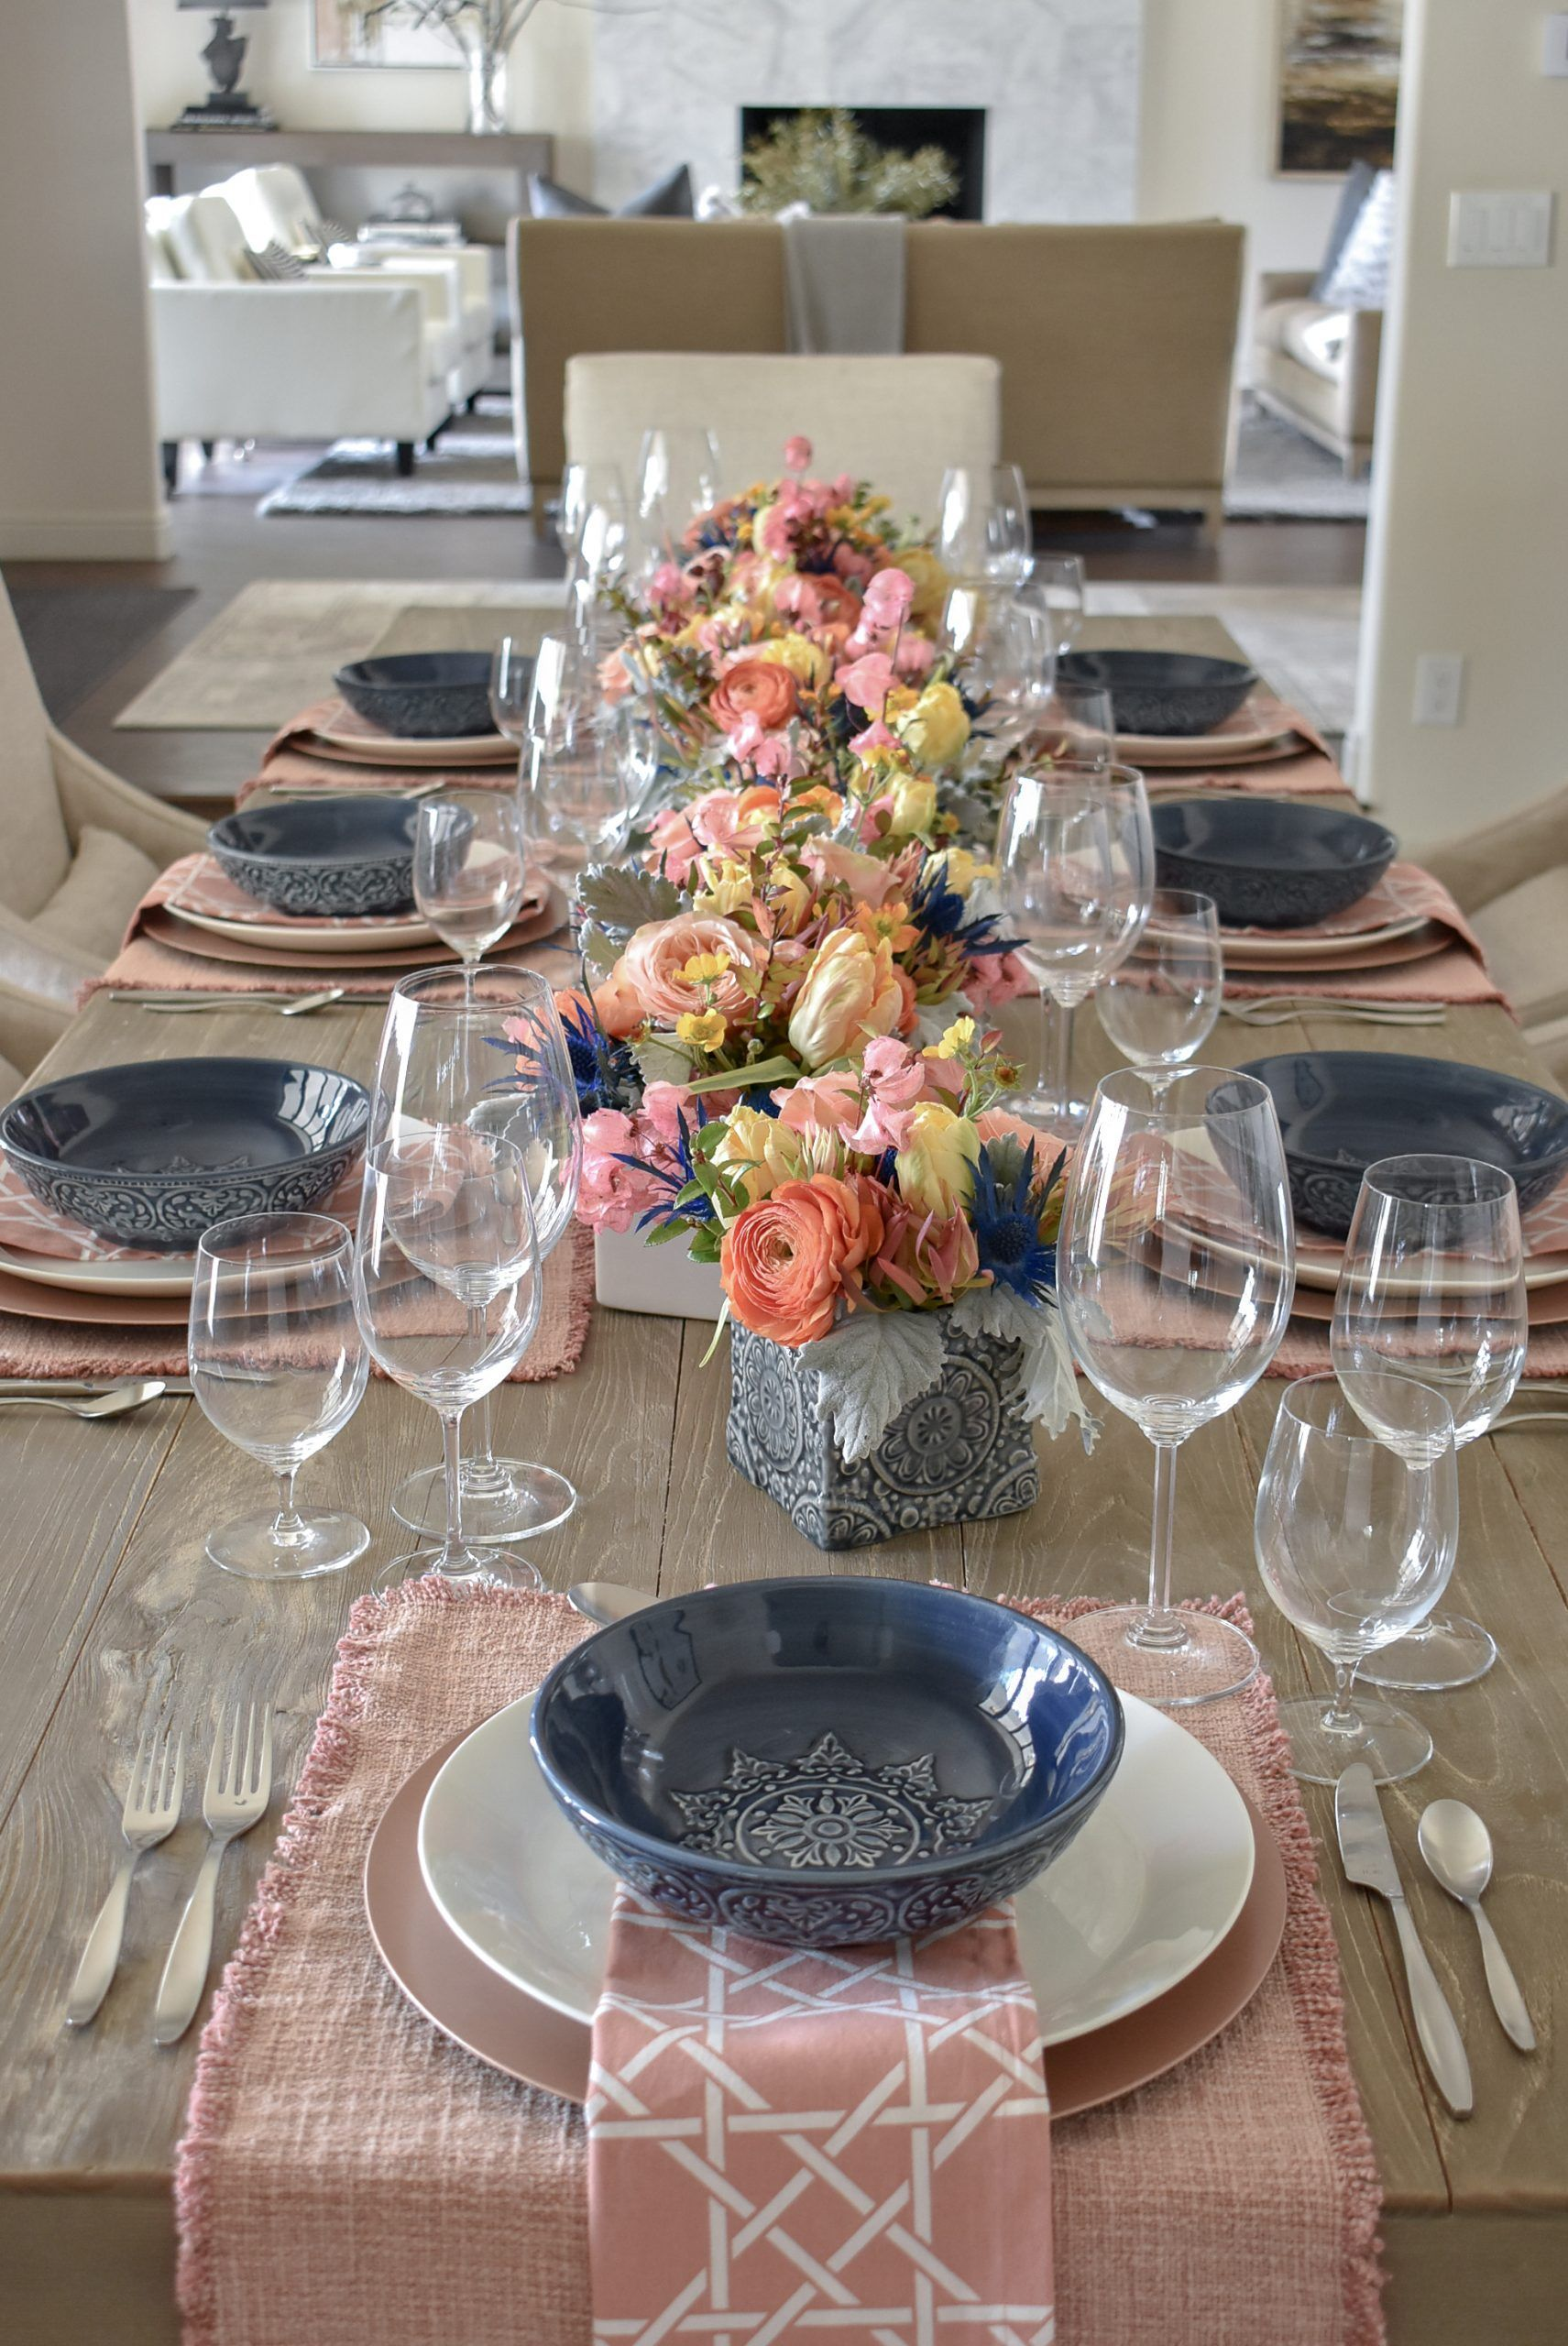 Blush Pink And Blue Spring Tablescape In 2020 With Images Spring Tablescapes Pretty Table Settings Tablescapes